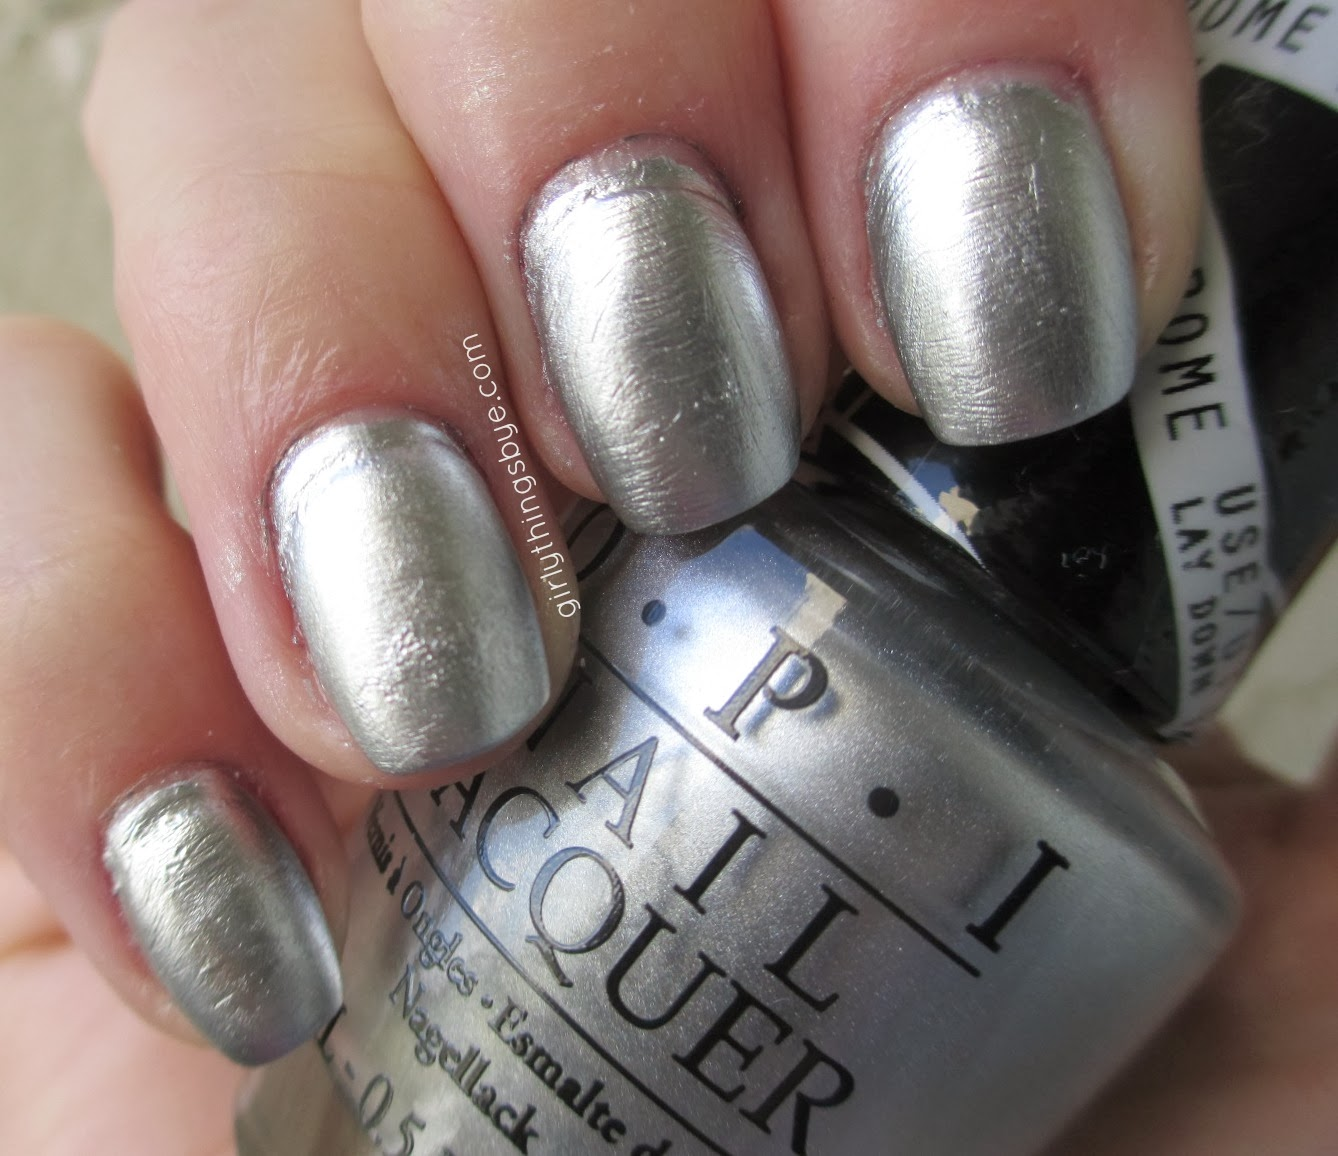 Gwen Stefani for OPI, Push and Shove #nailpolish